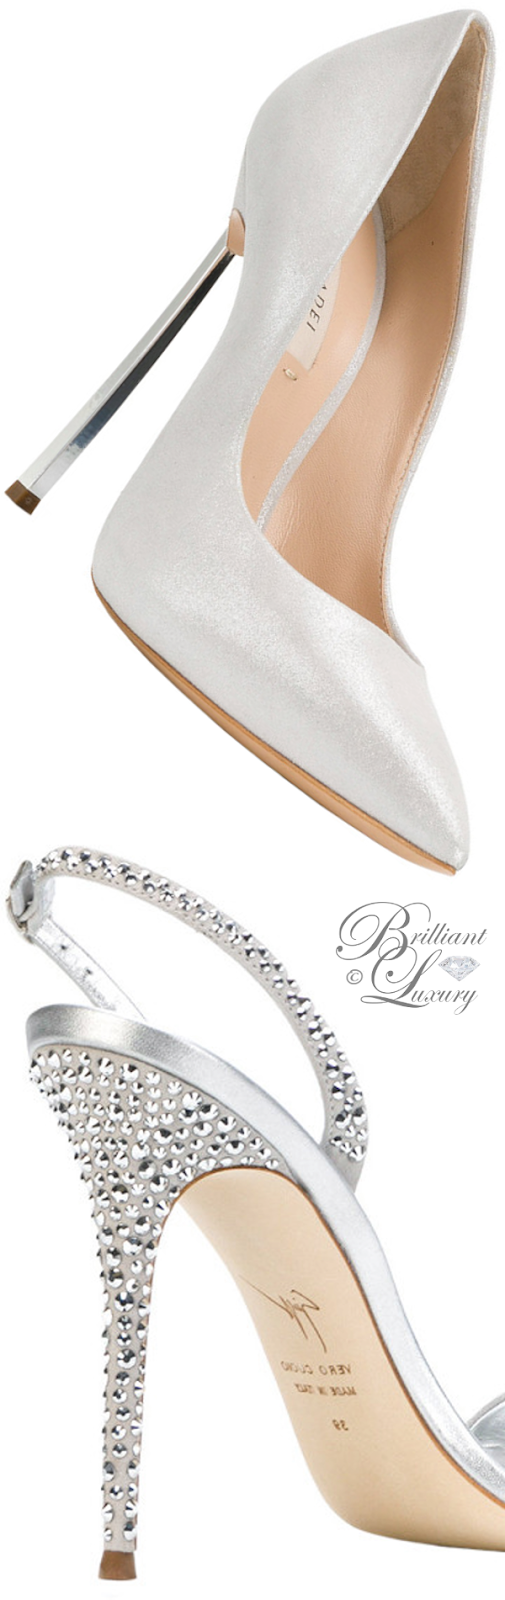 Brilliant Luxury ♦ Casadei techno Blade pumps and Giuseppe Zanotti embellished slingback sandals